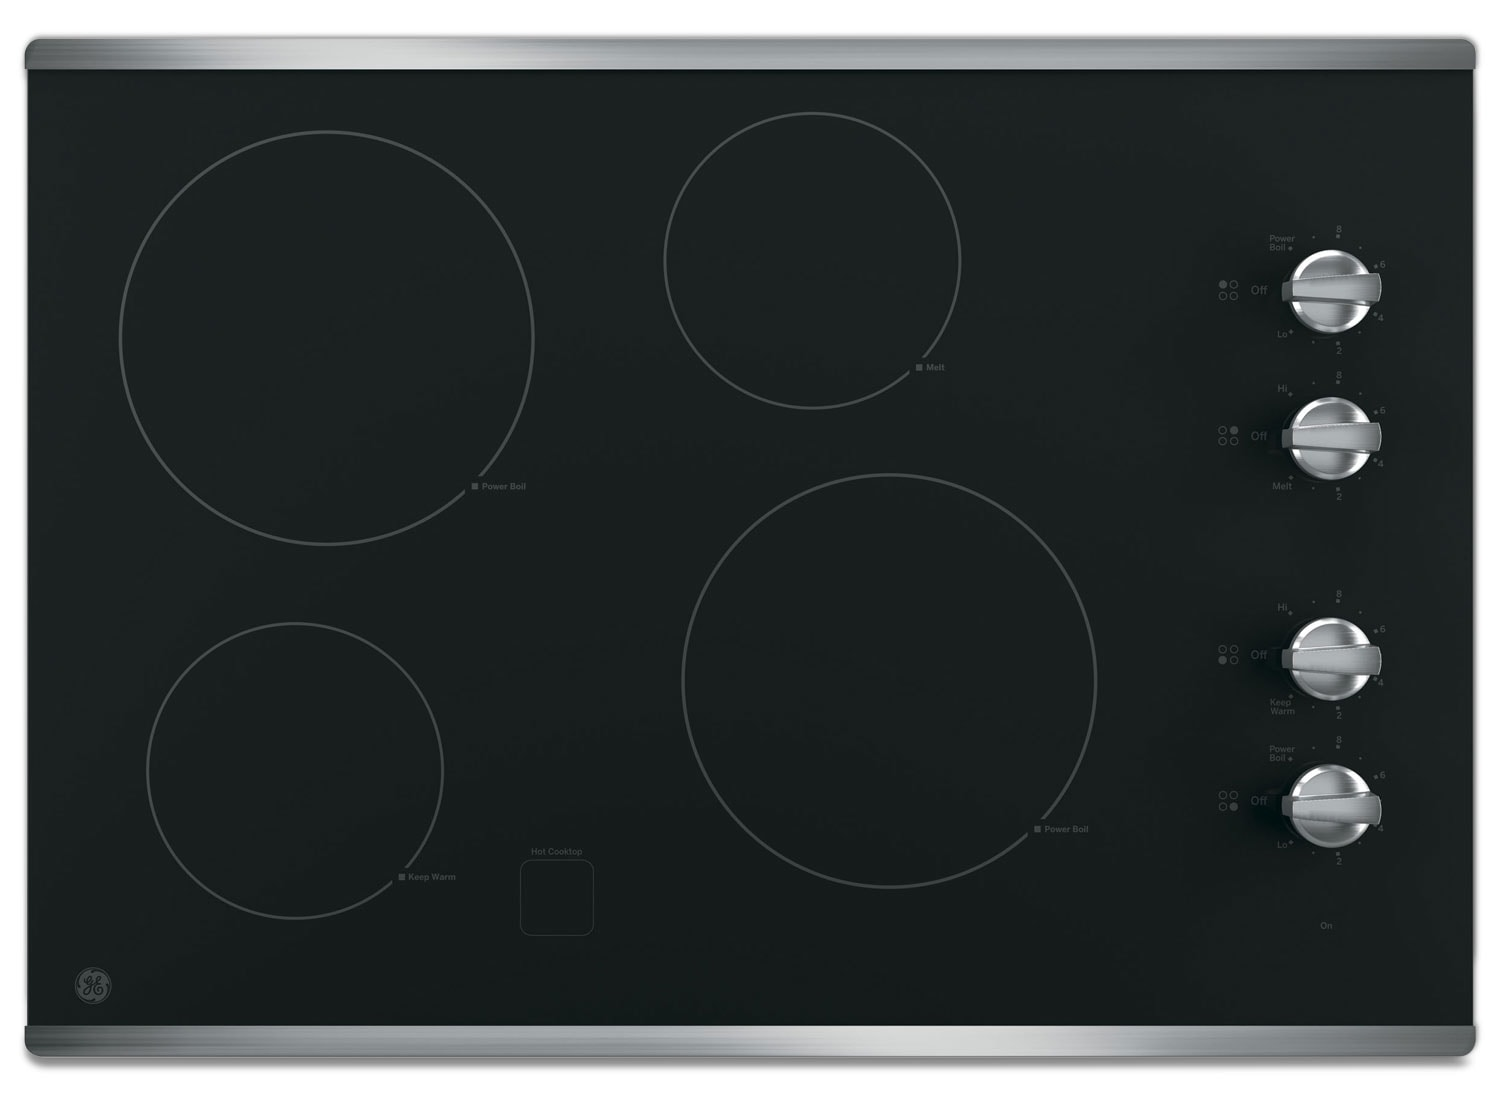 "Cooking Products - GE 30"" Electric Cooktop with Built-In Knob-Control - Stainless Steel"